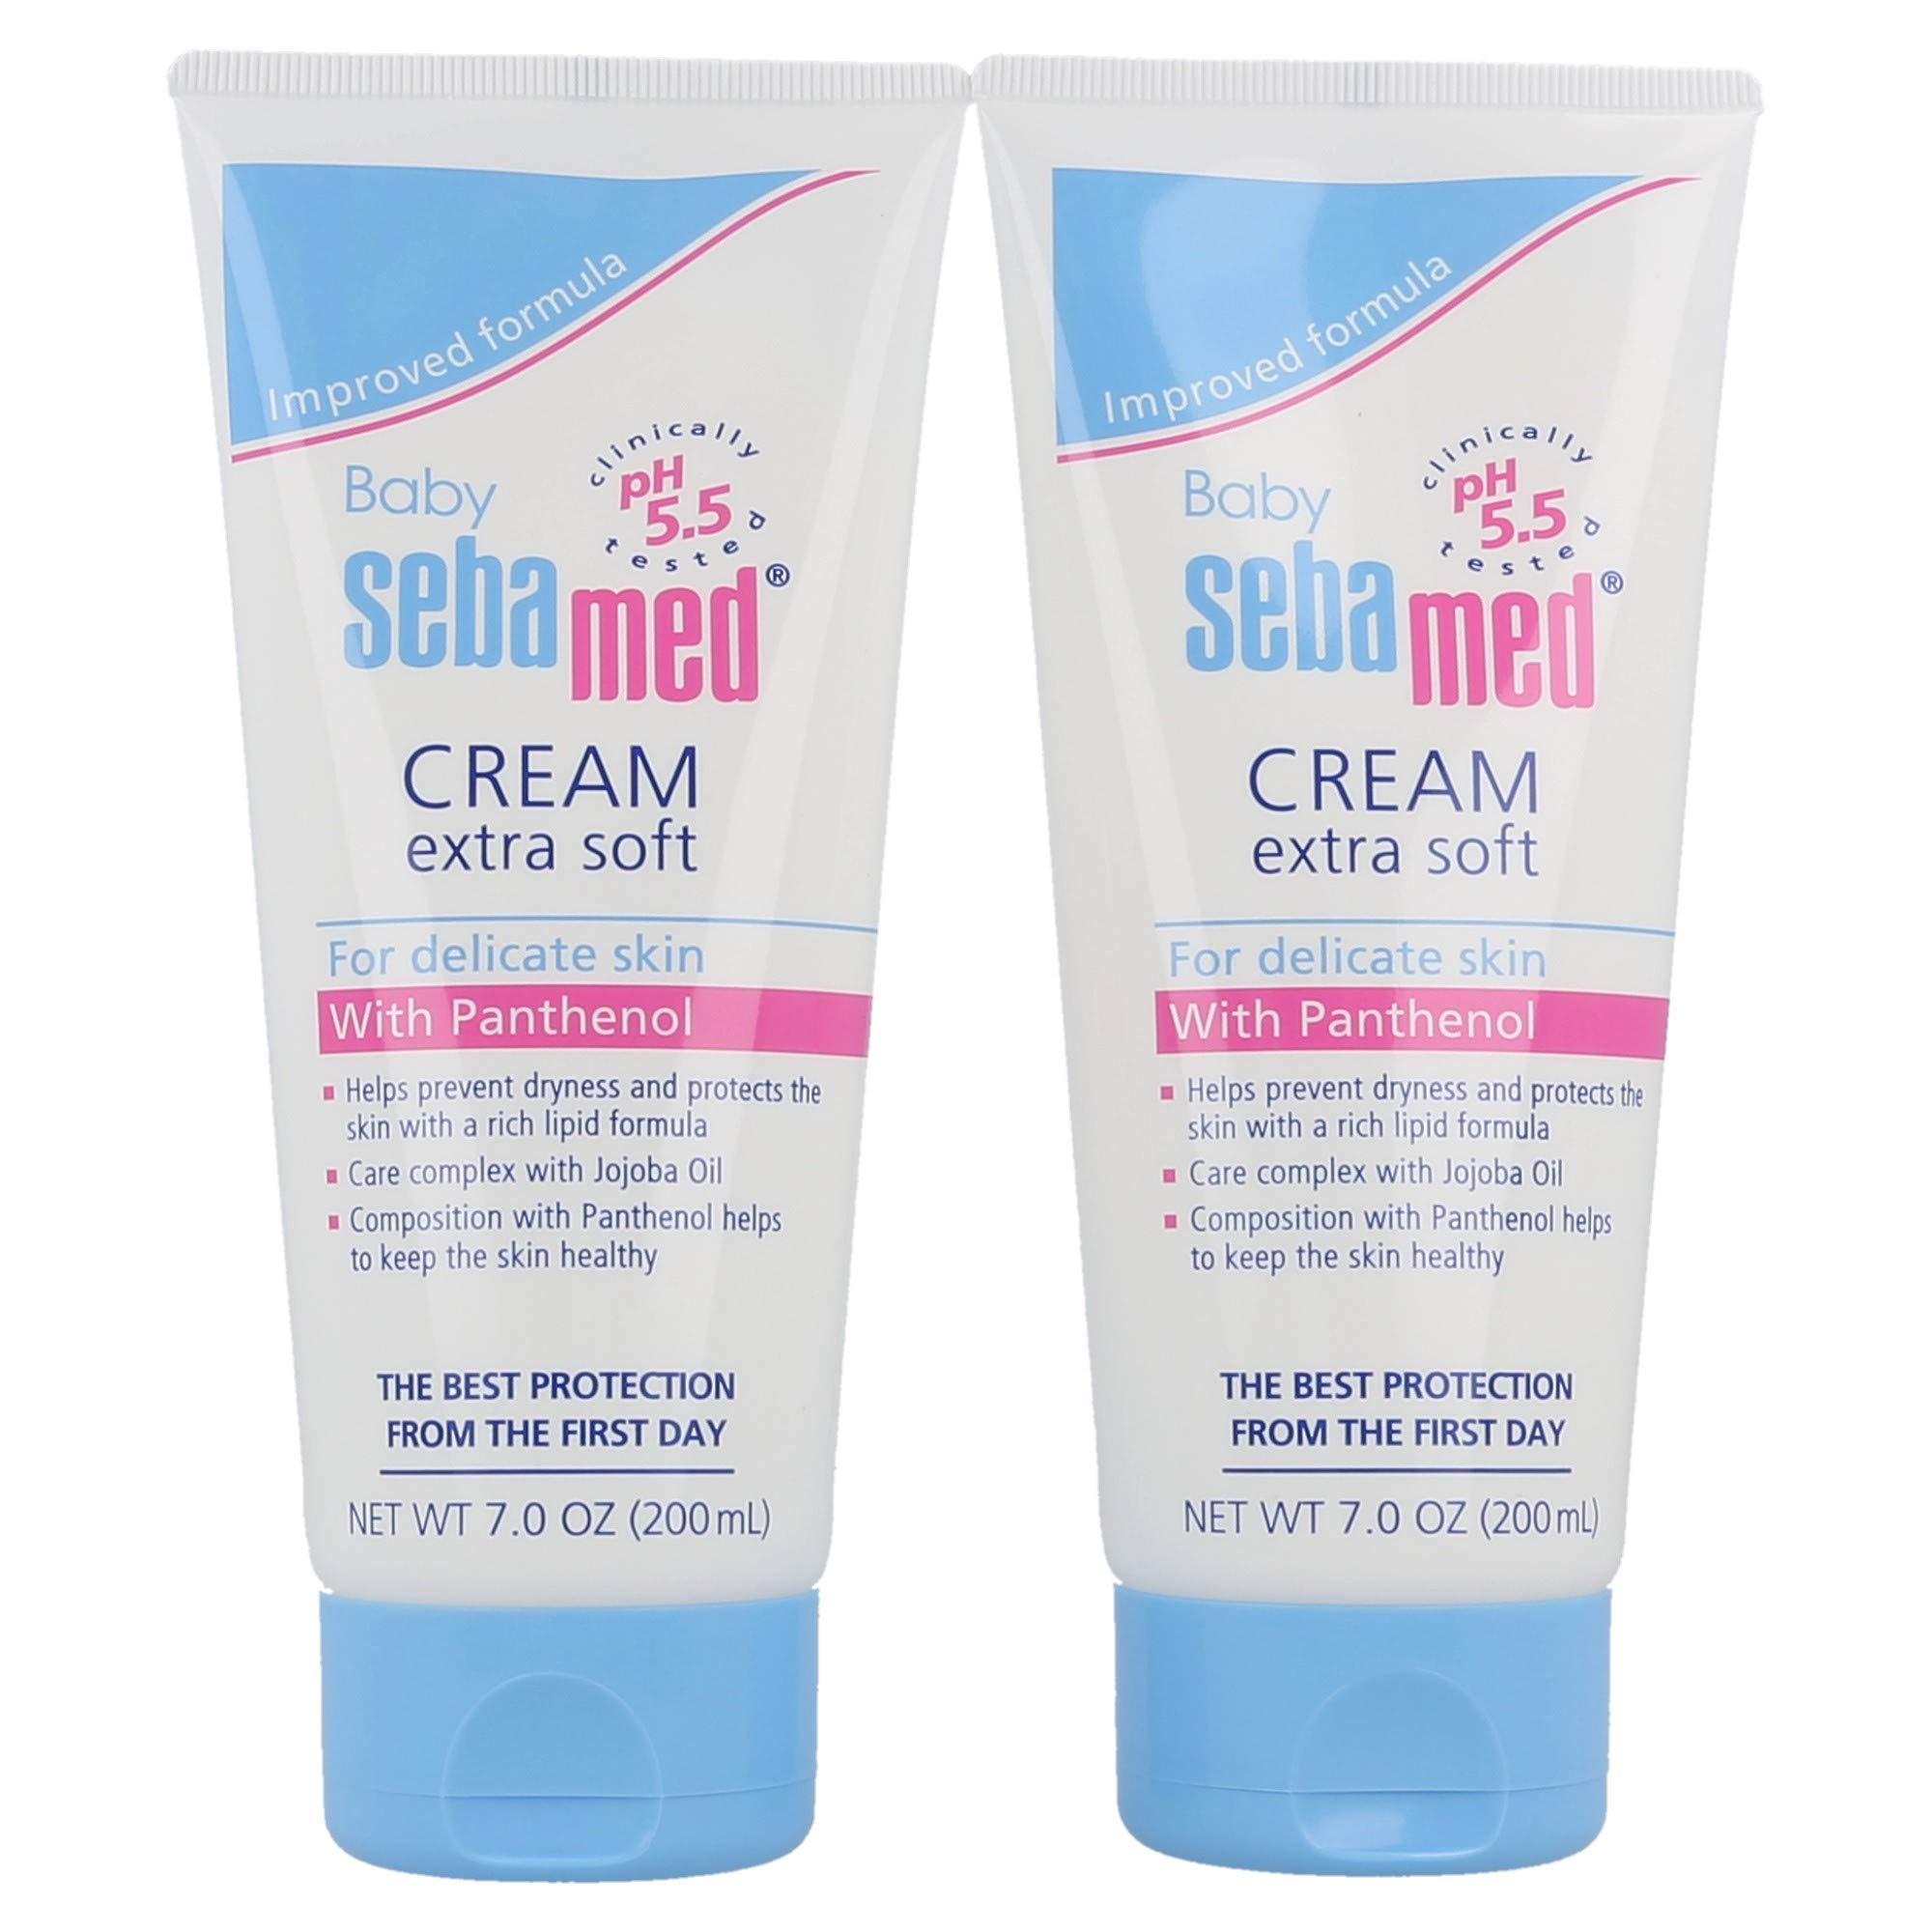 Sebamed Baby Cream Extra Soft Ultra Mild Moisturizer for Delicate Skin with Panthenol (200mL) Pack of 2 by SEBAMED